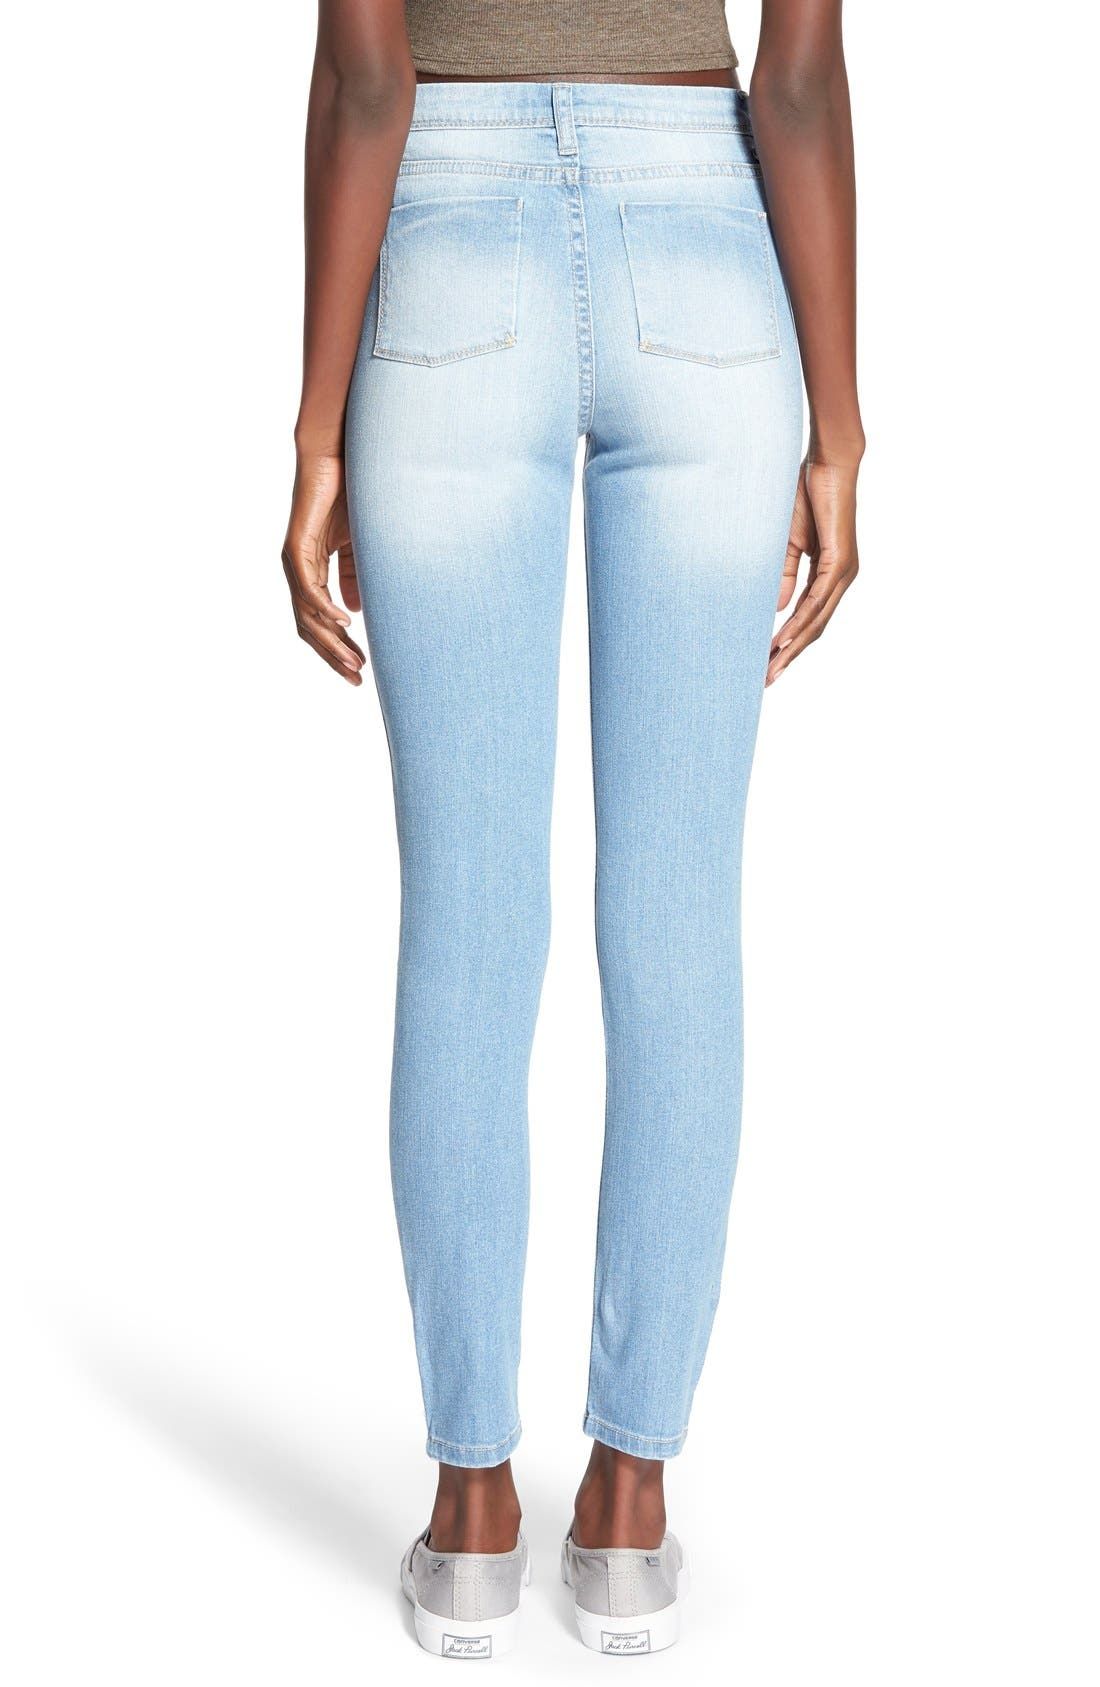 Alternate Image 2  - Generra High Waist Skinny Jeans (70s Blue)